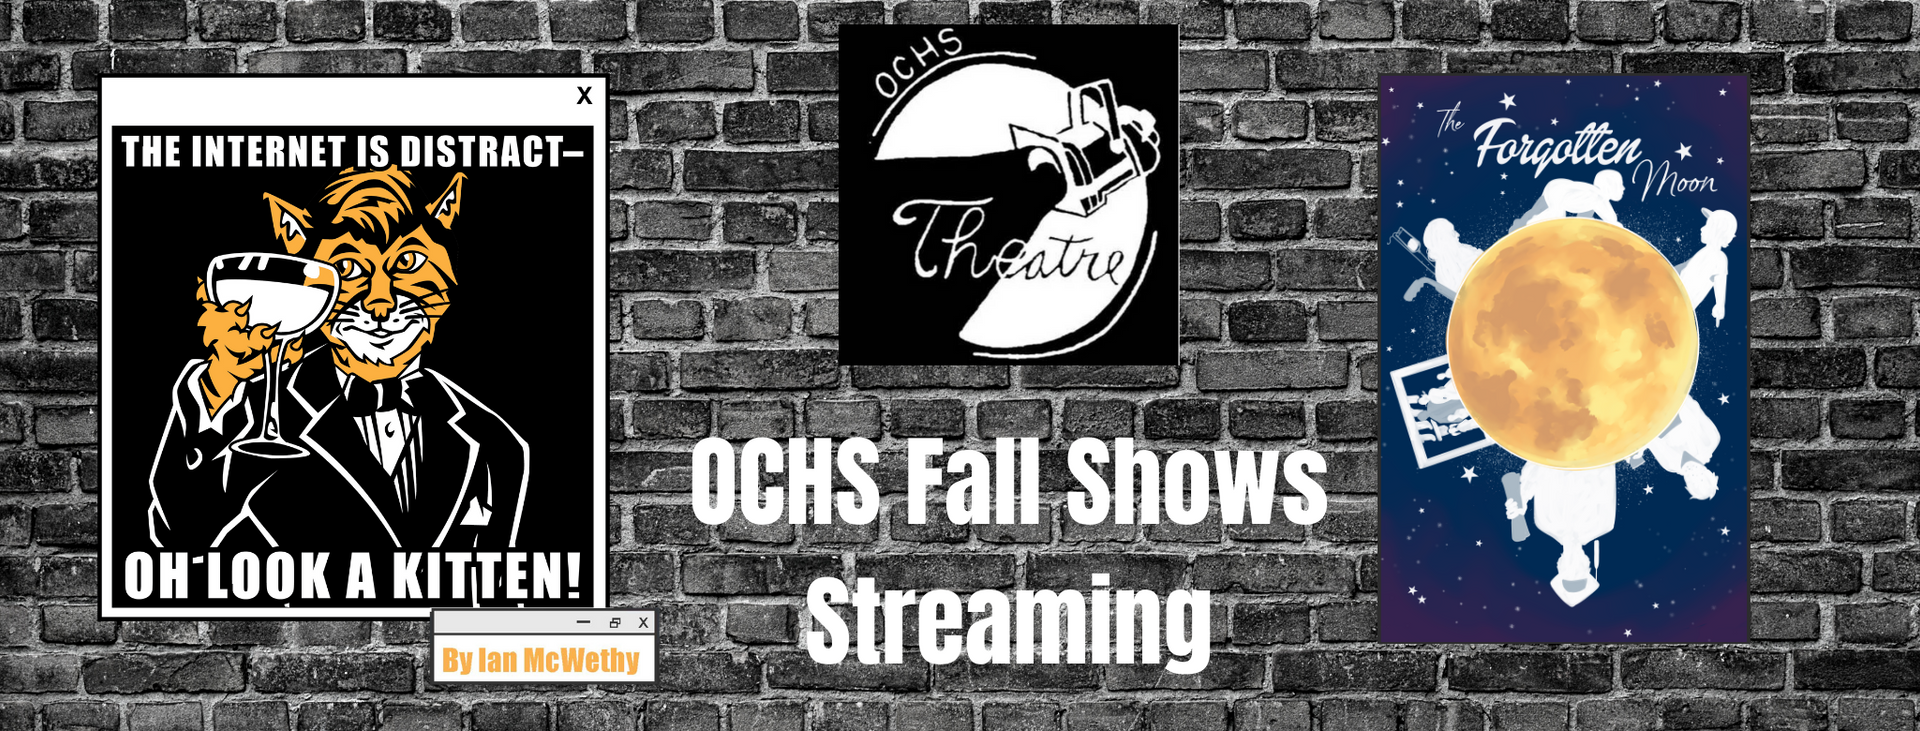 Fall Shows Video (4).png